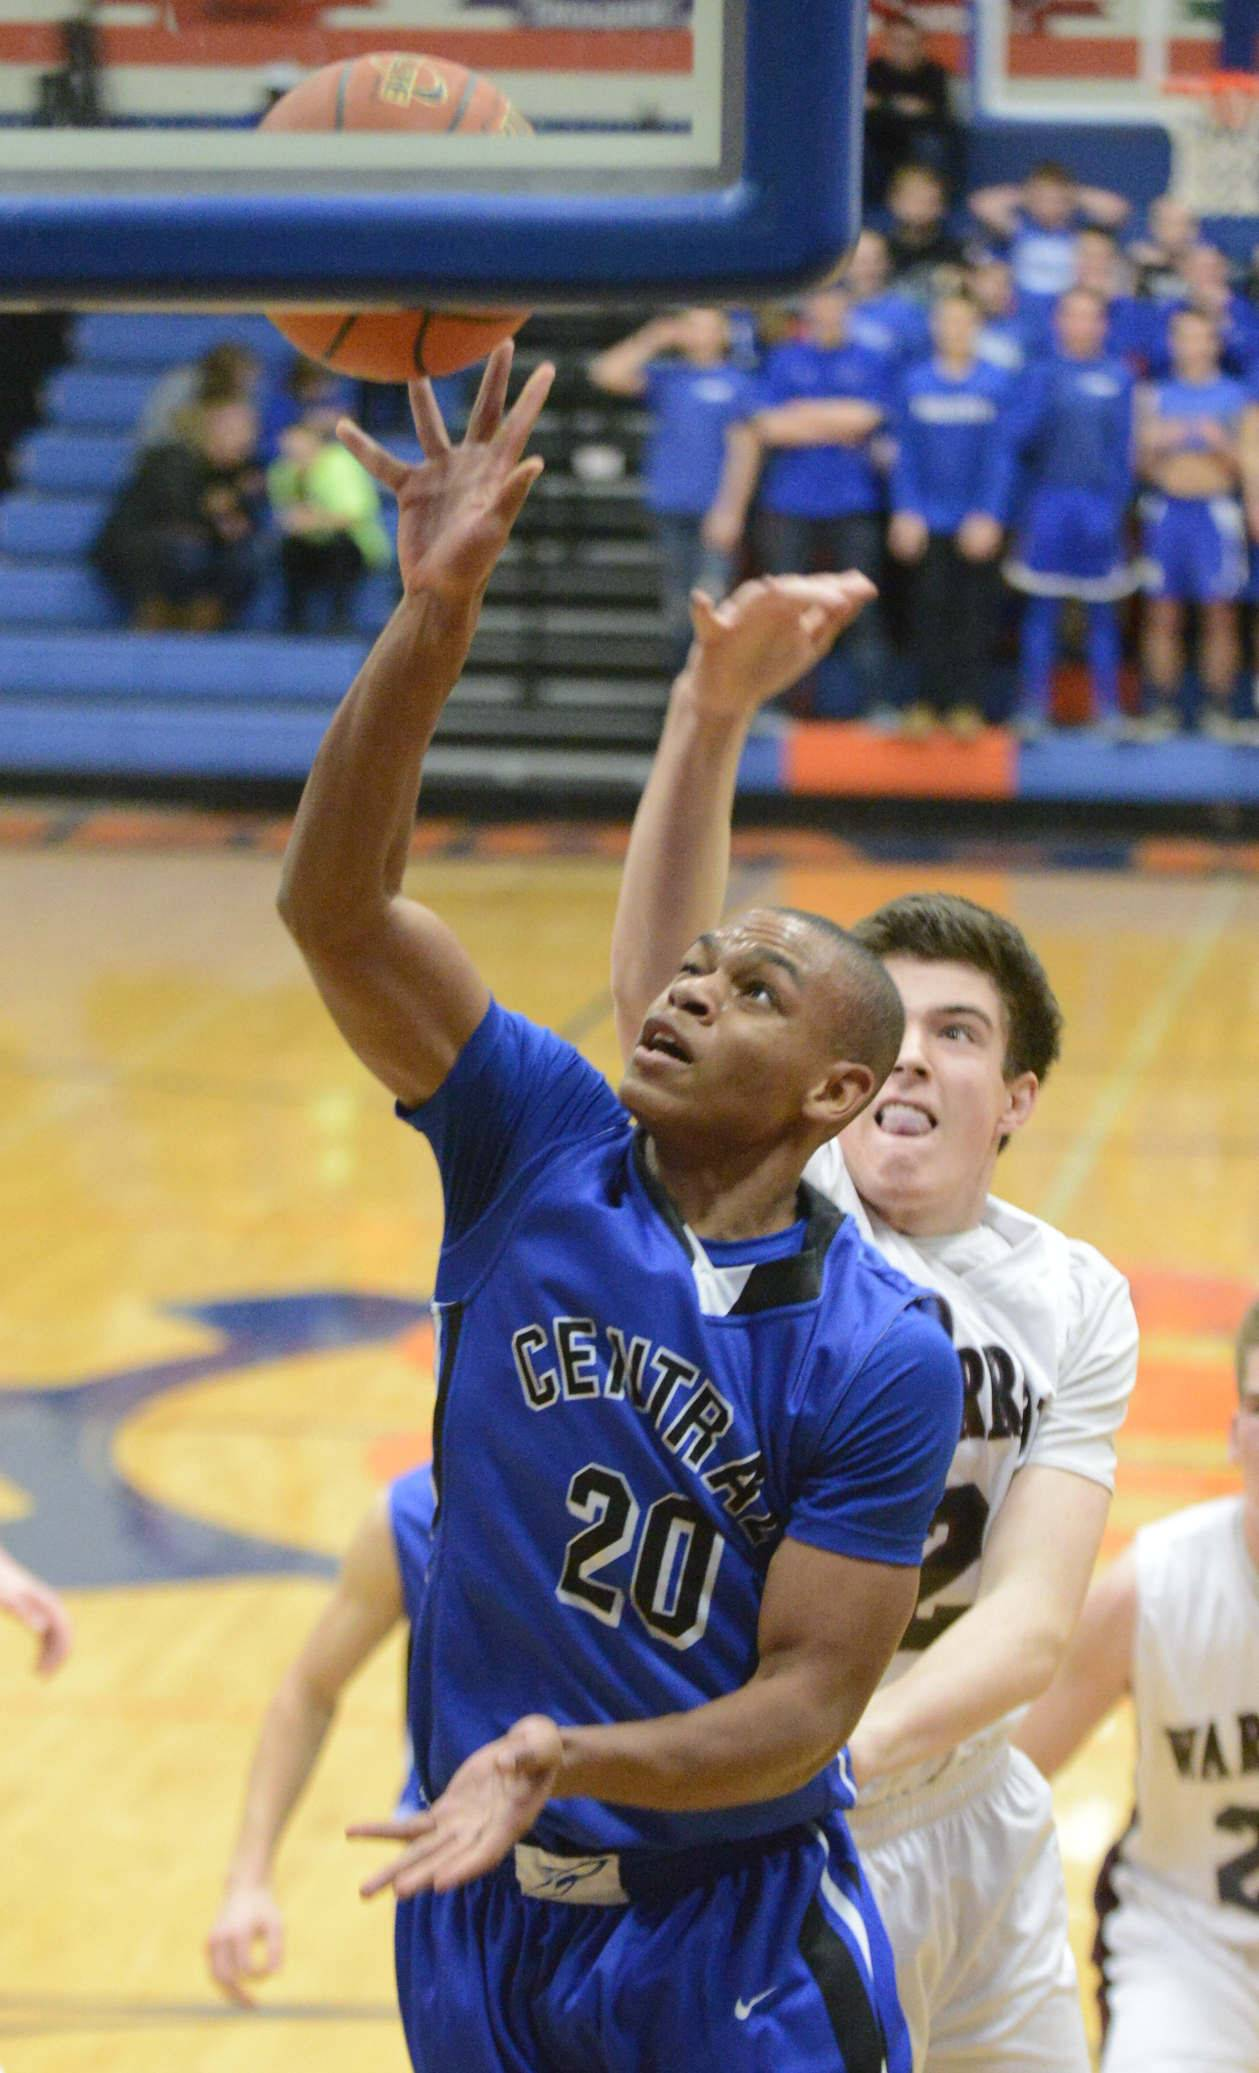 Images from the Wheaton Academy vs. Burlington Central boys Class 3A regional basketball game Wednesday, March 5, 2014.